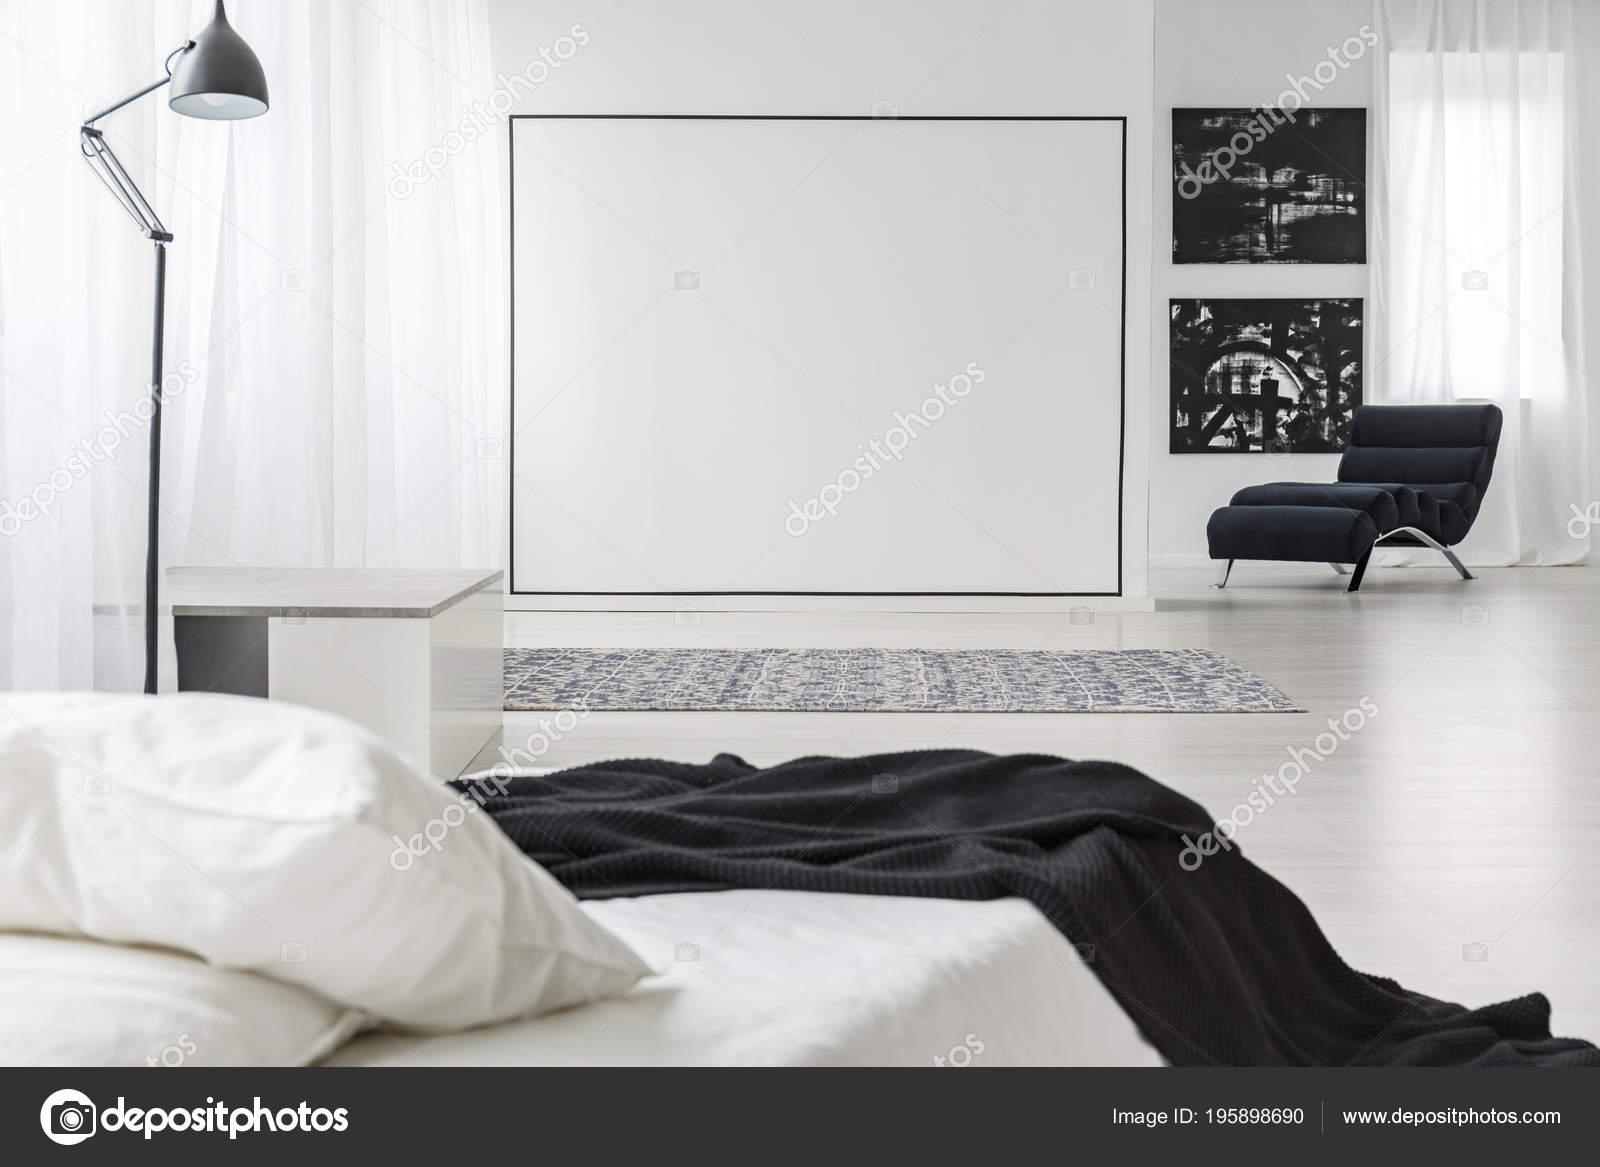 Black square decoration on a white wall in minimalistic bedroom interior with lamp paintings and bed photo by photographee eu